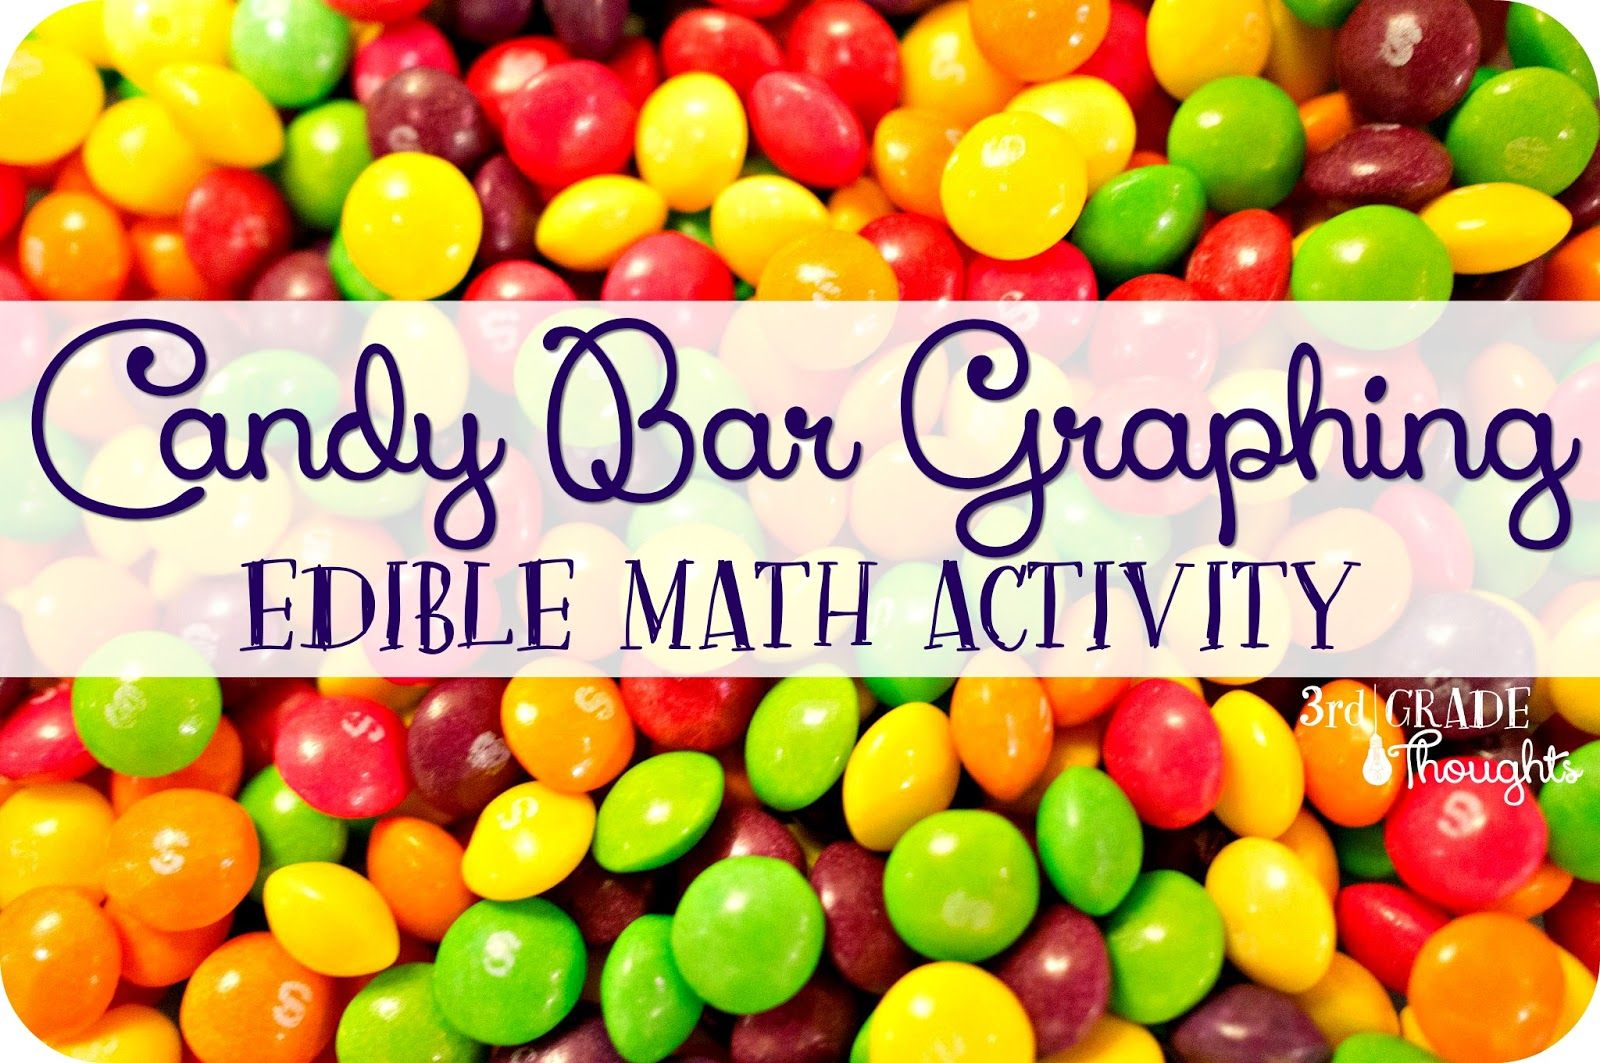 Candy Bar Graphing Edible Math Activity